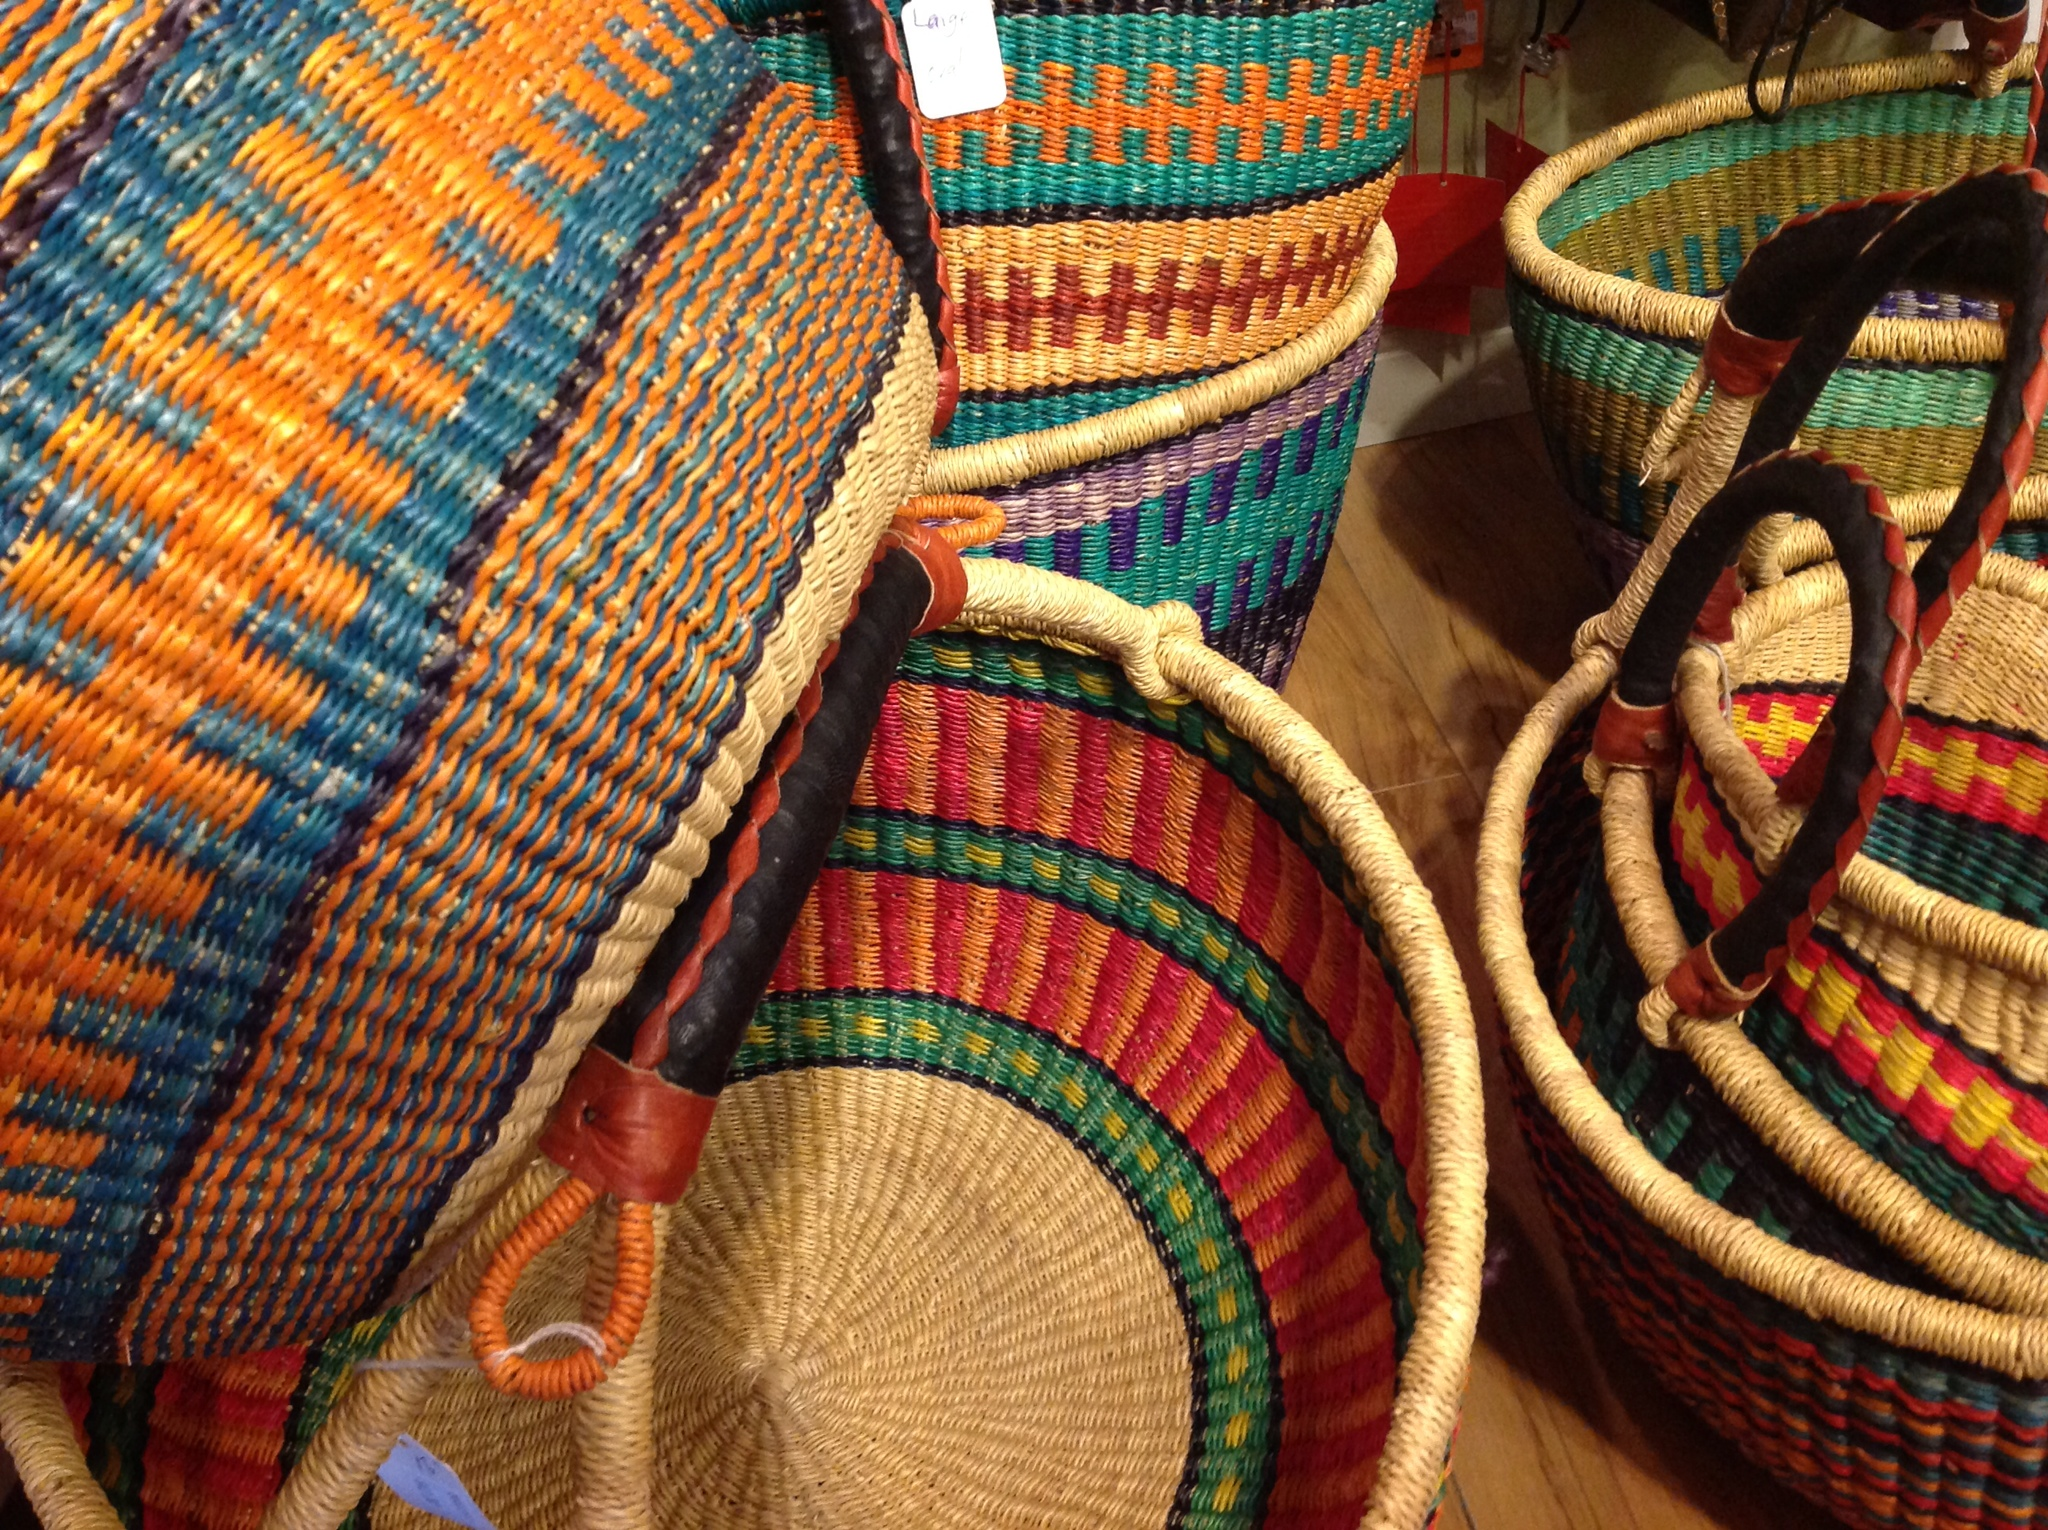 Fair Trade African Baskets Three Bags Full Yarn Store